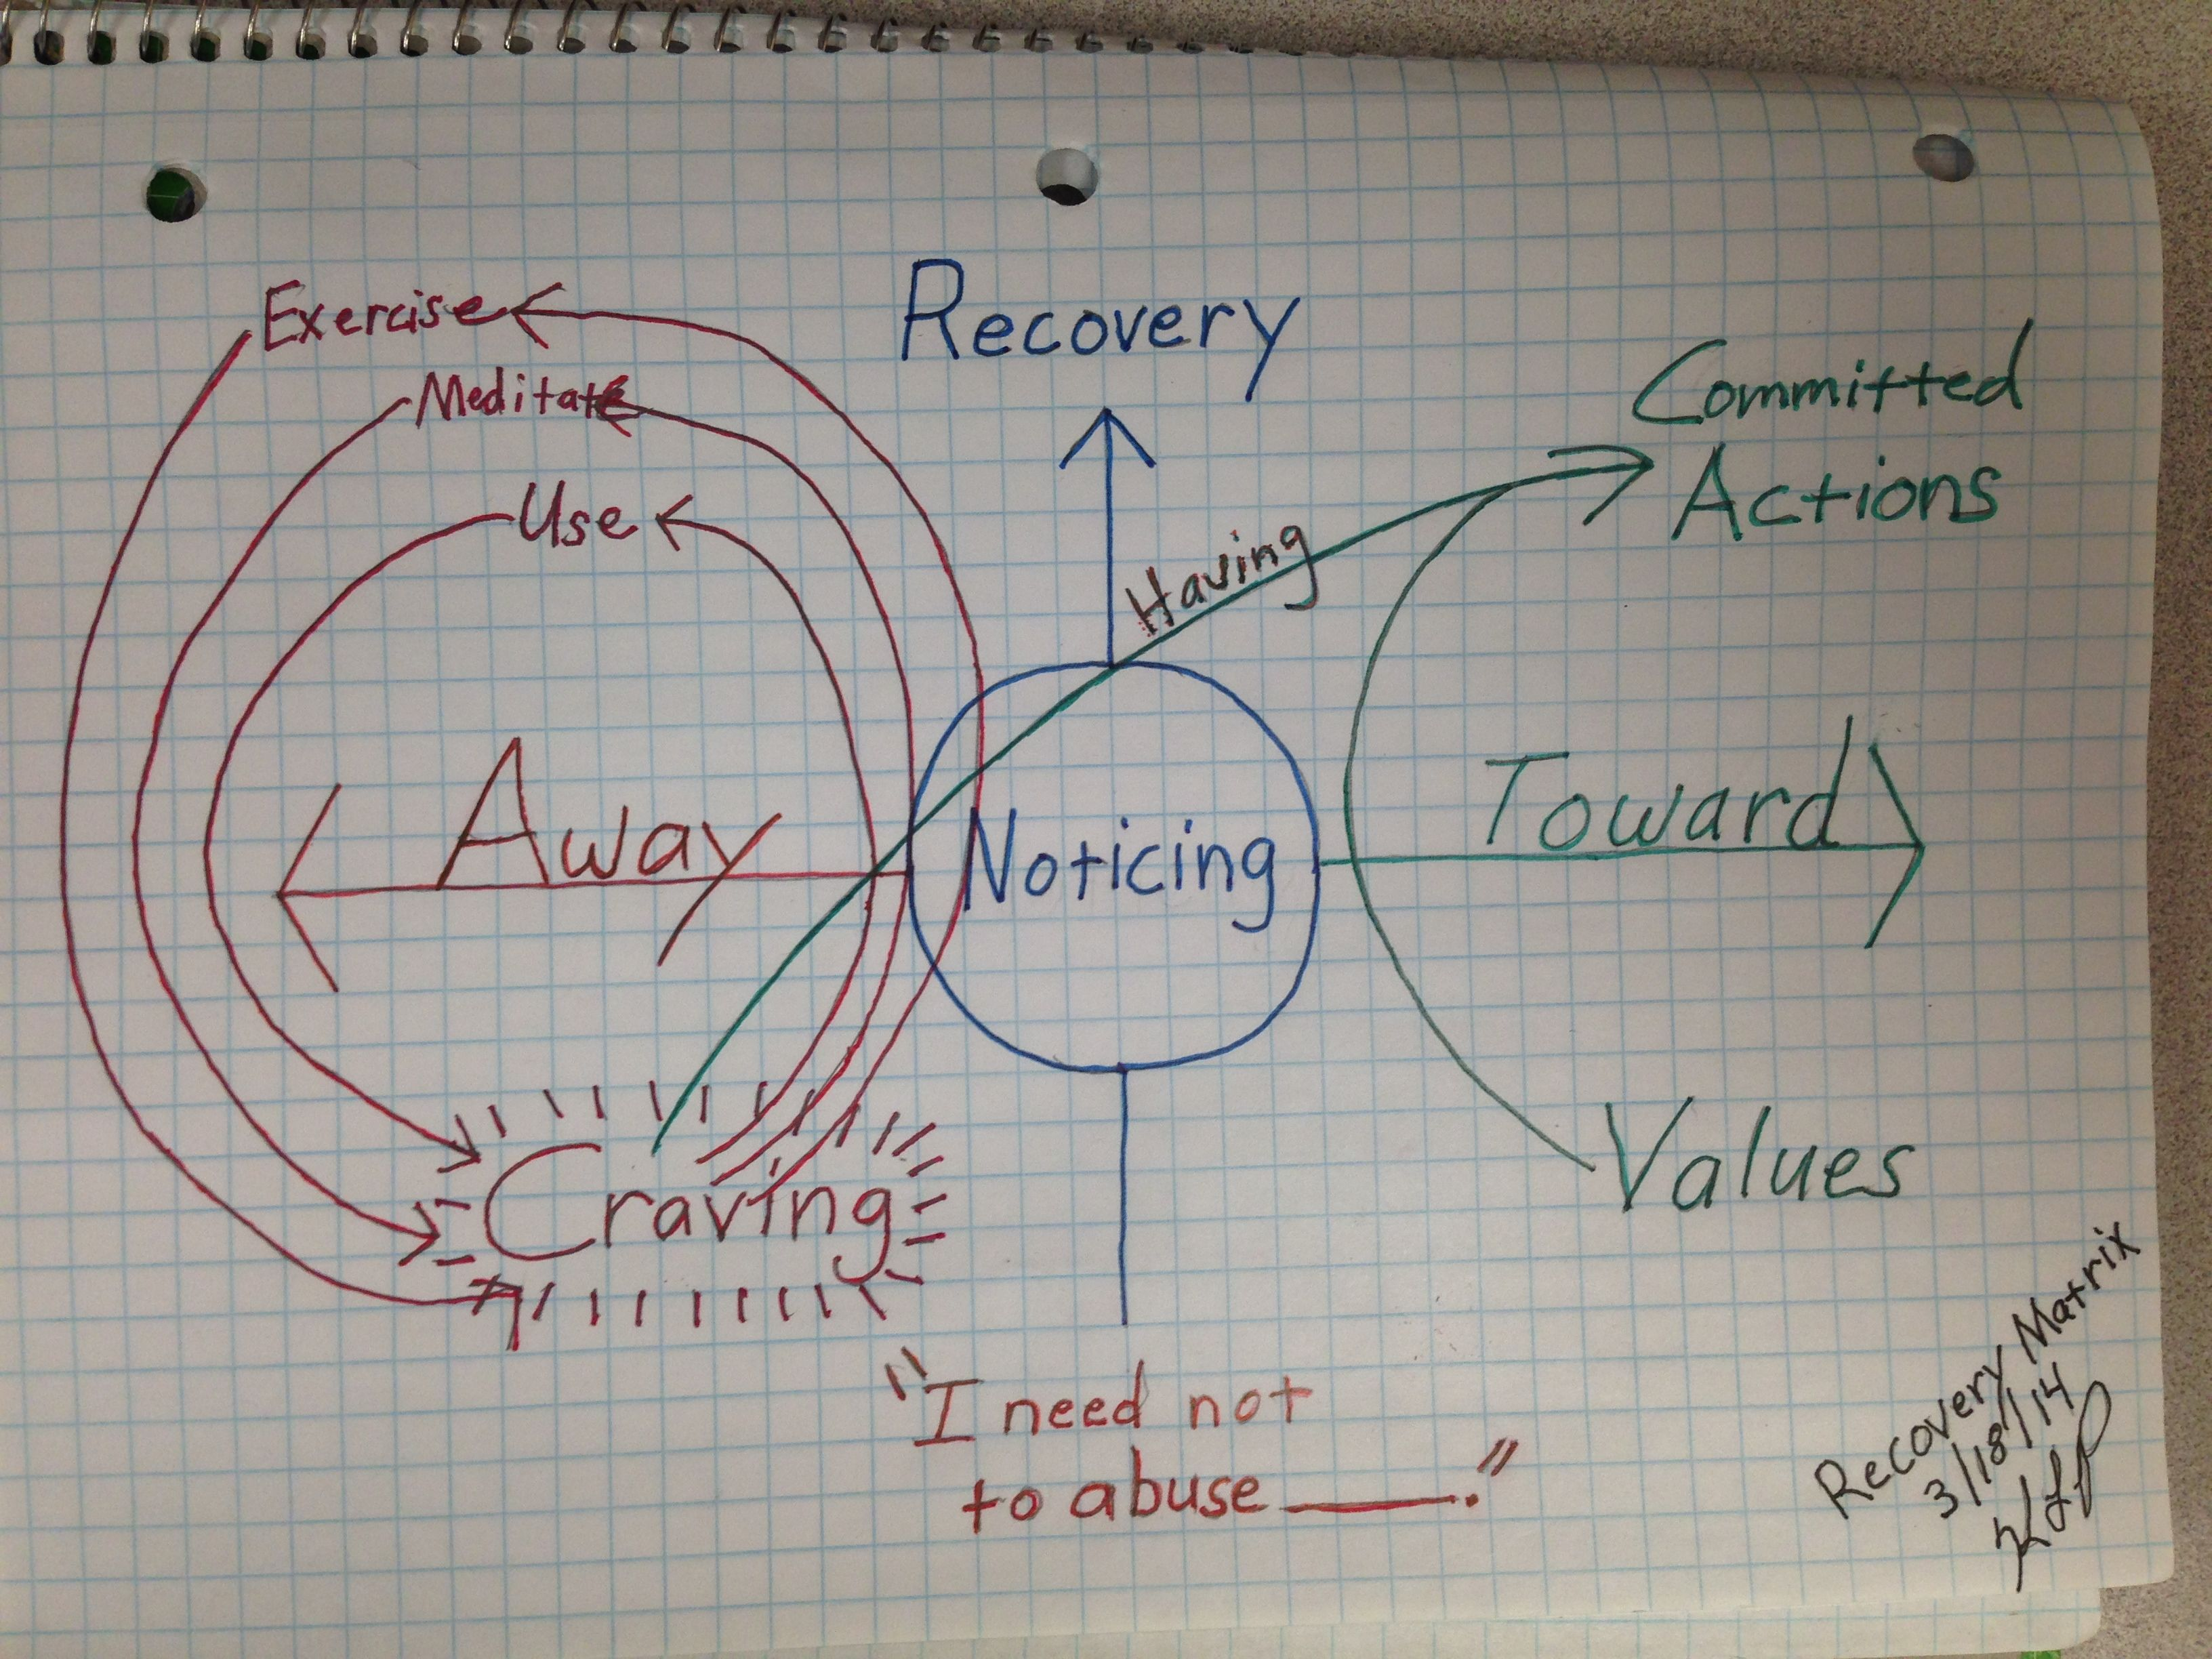 Acceptance And Commitment Therapy Process Shown On The